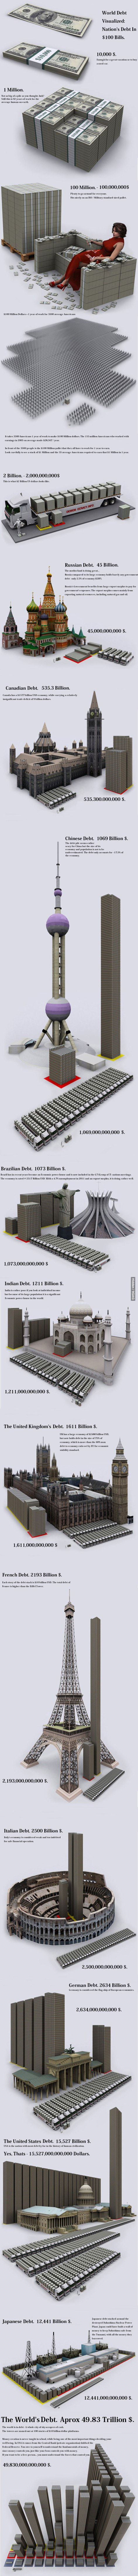 World Debt Visualized Nation's Debt In $100 Bills